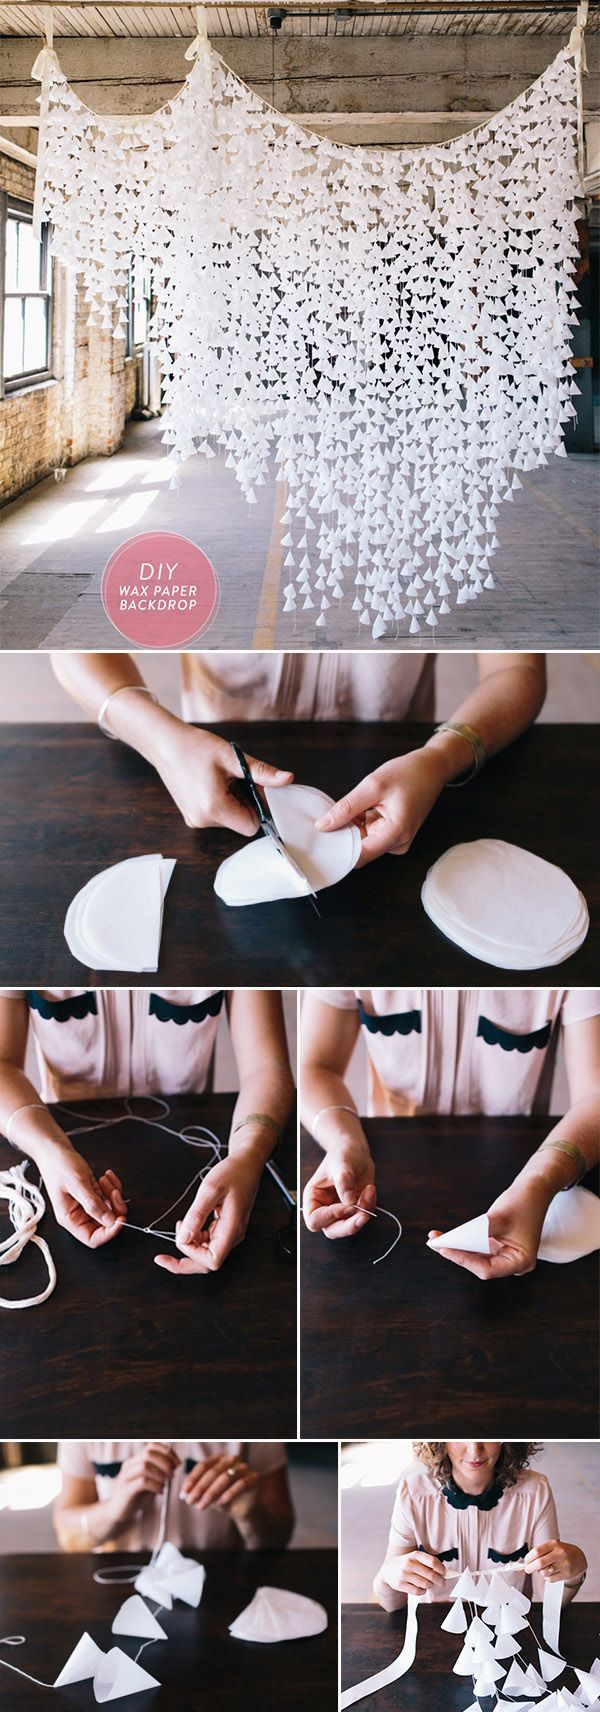 Best 25 diy wedding decorations ideas on pinterest diy wedding diy wedding ideas 10 perfect ways to use paper for weddings junglespirit Gallery